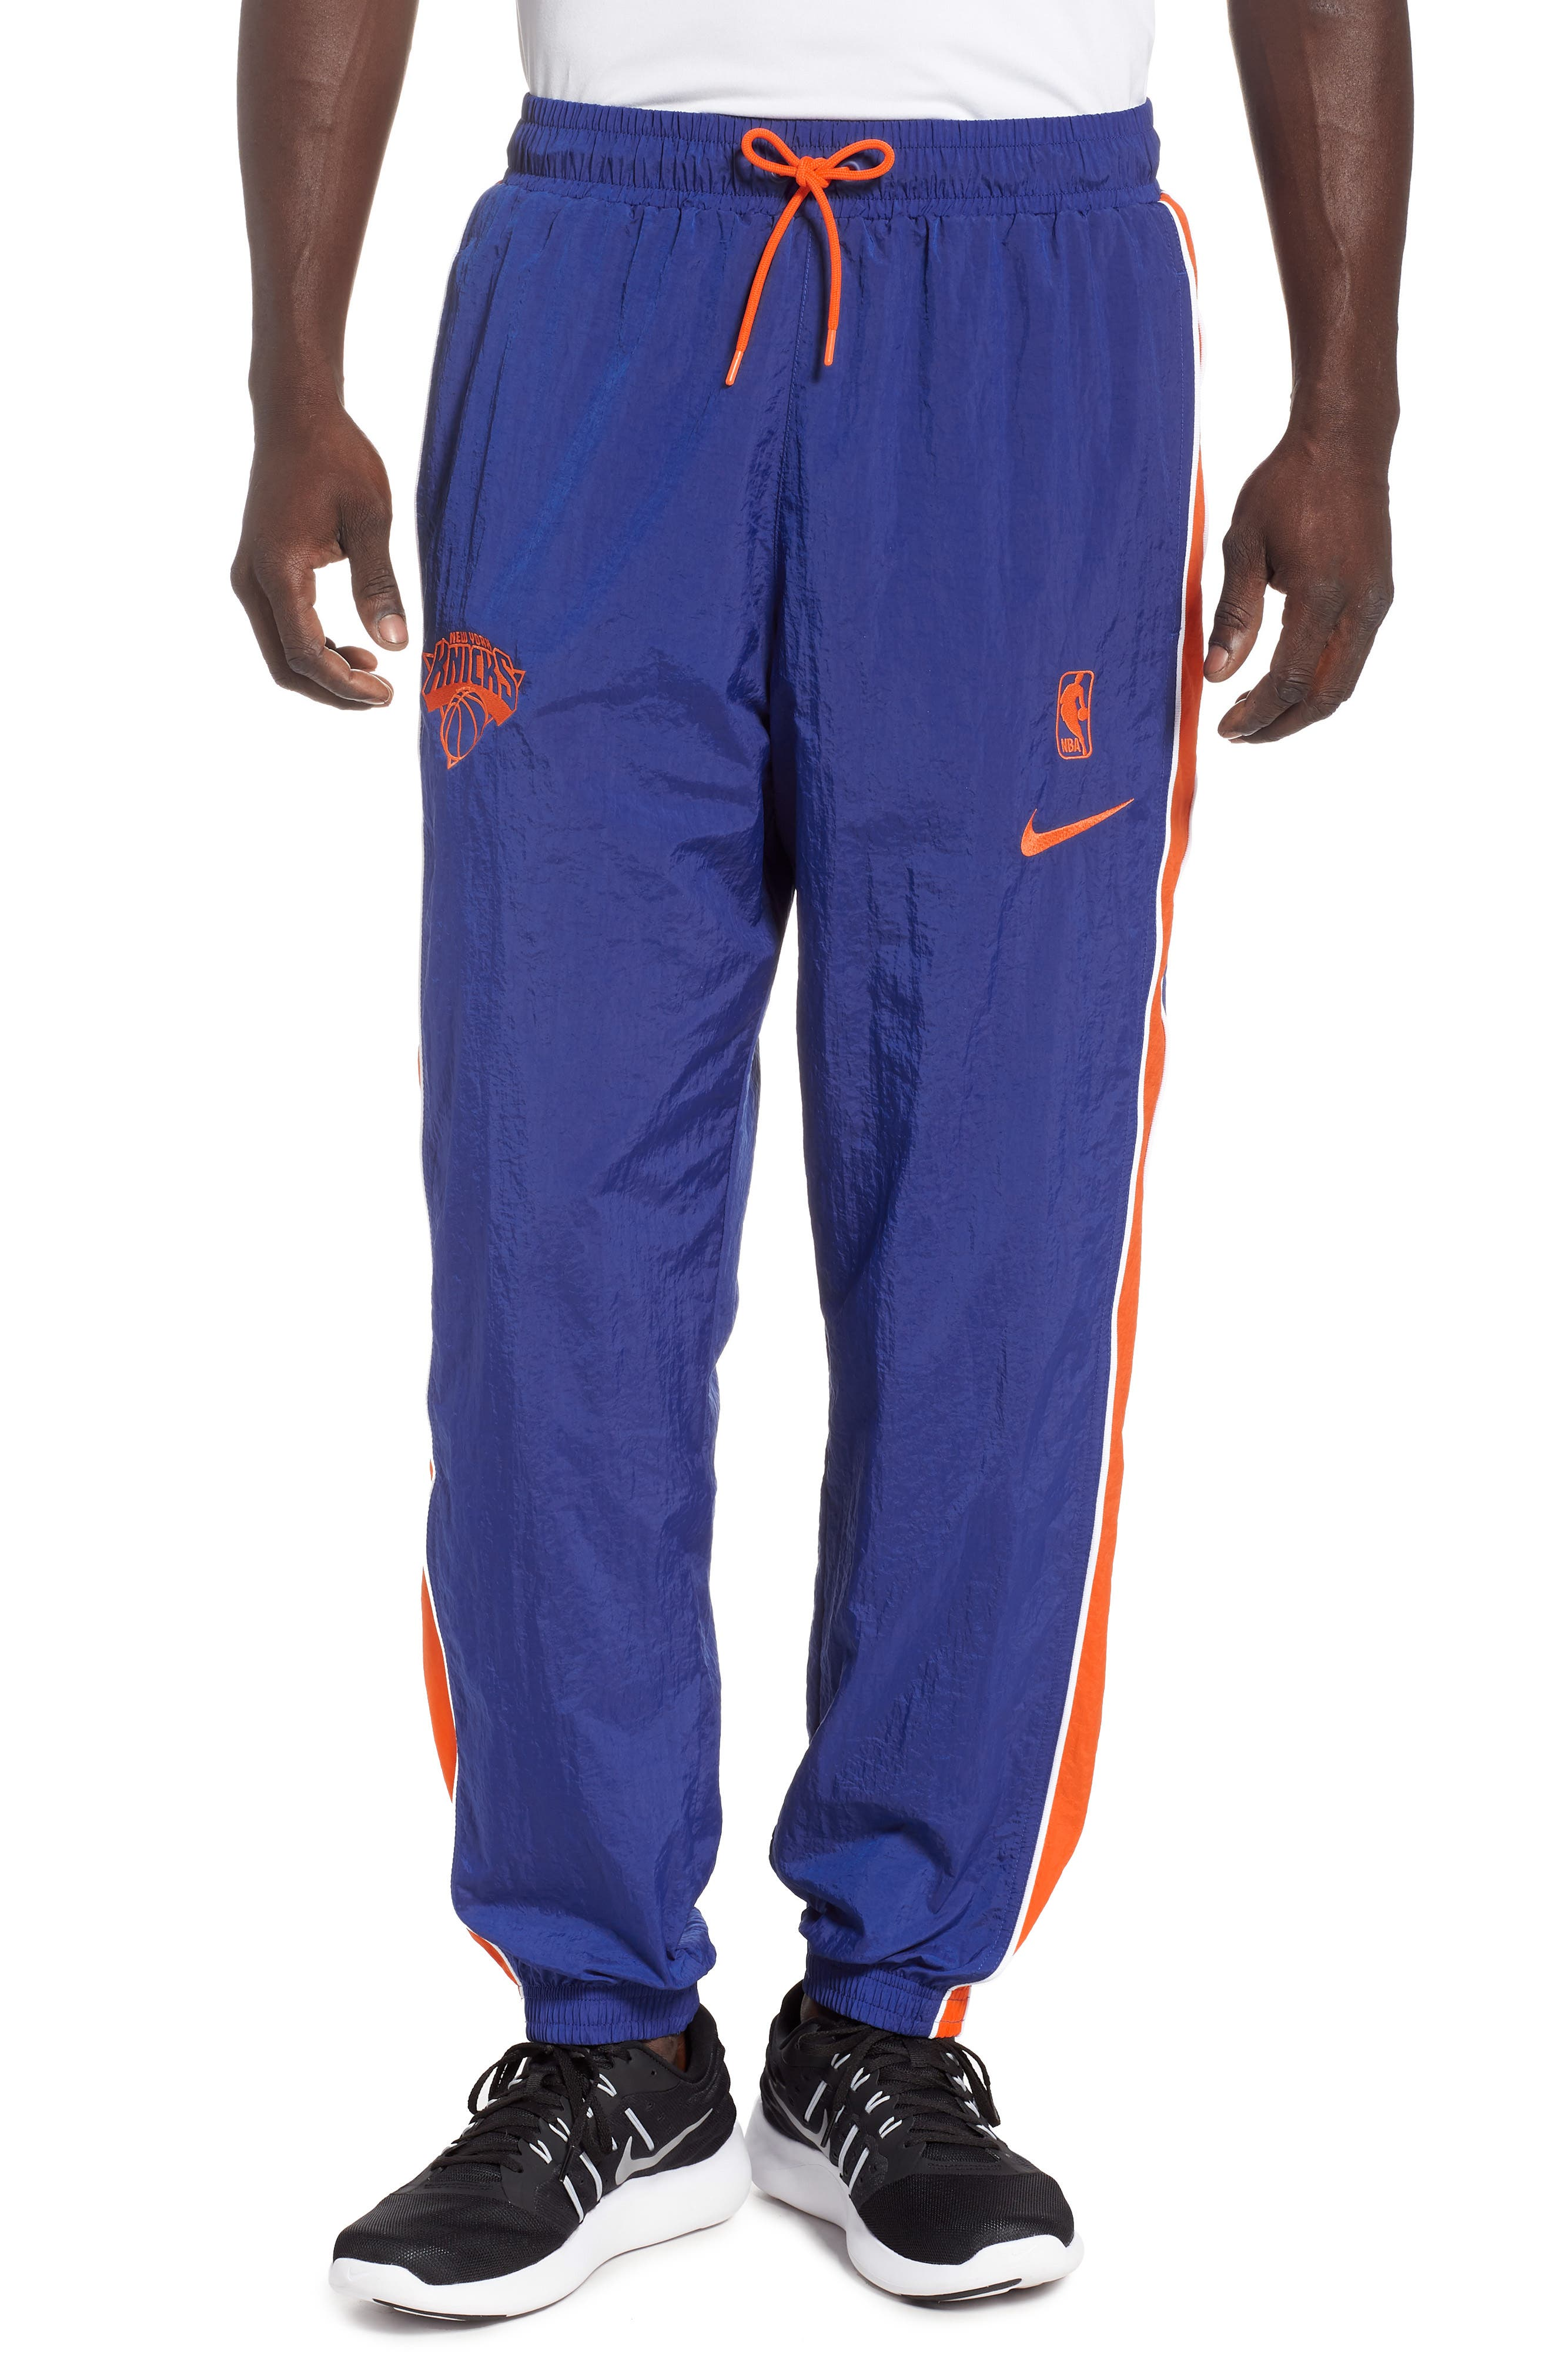 New York Knicks Courtside Track Pants,                         Main,                         color, RUSH BLUE/ BRILLIANT ORANGE